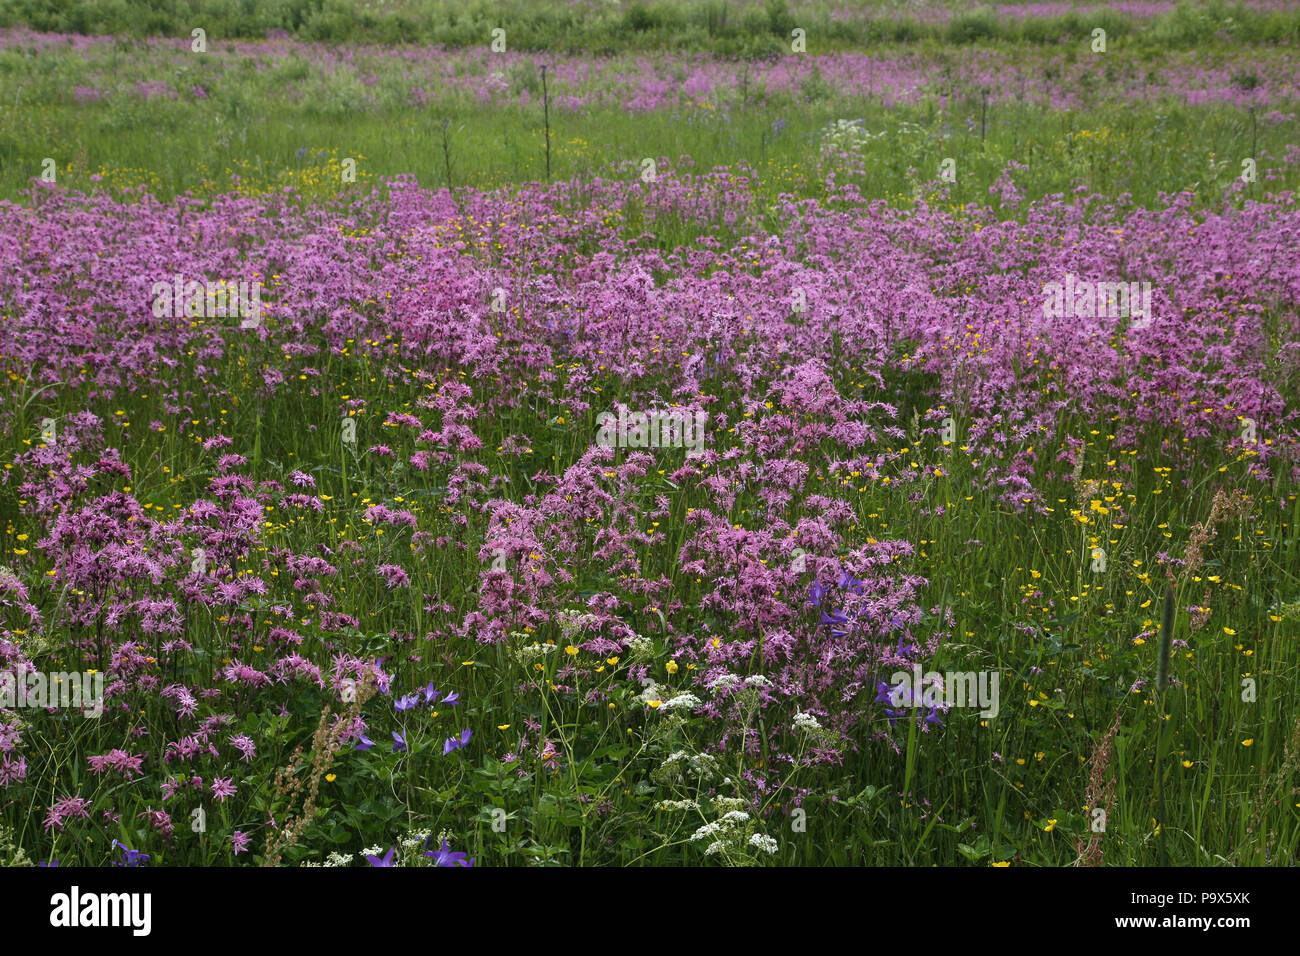 Stand of Ragged Robin, Lychnis flos-cuculi - Stock Image